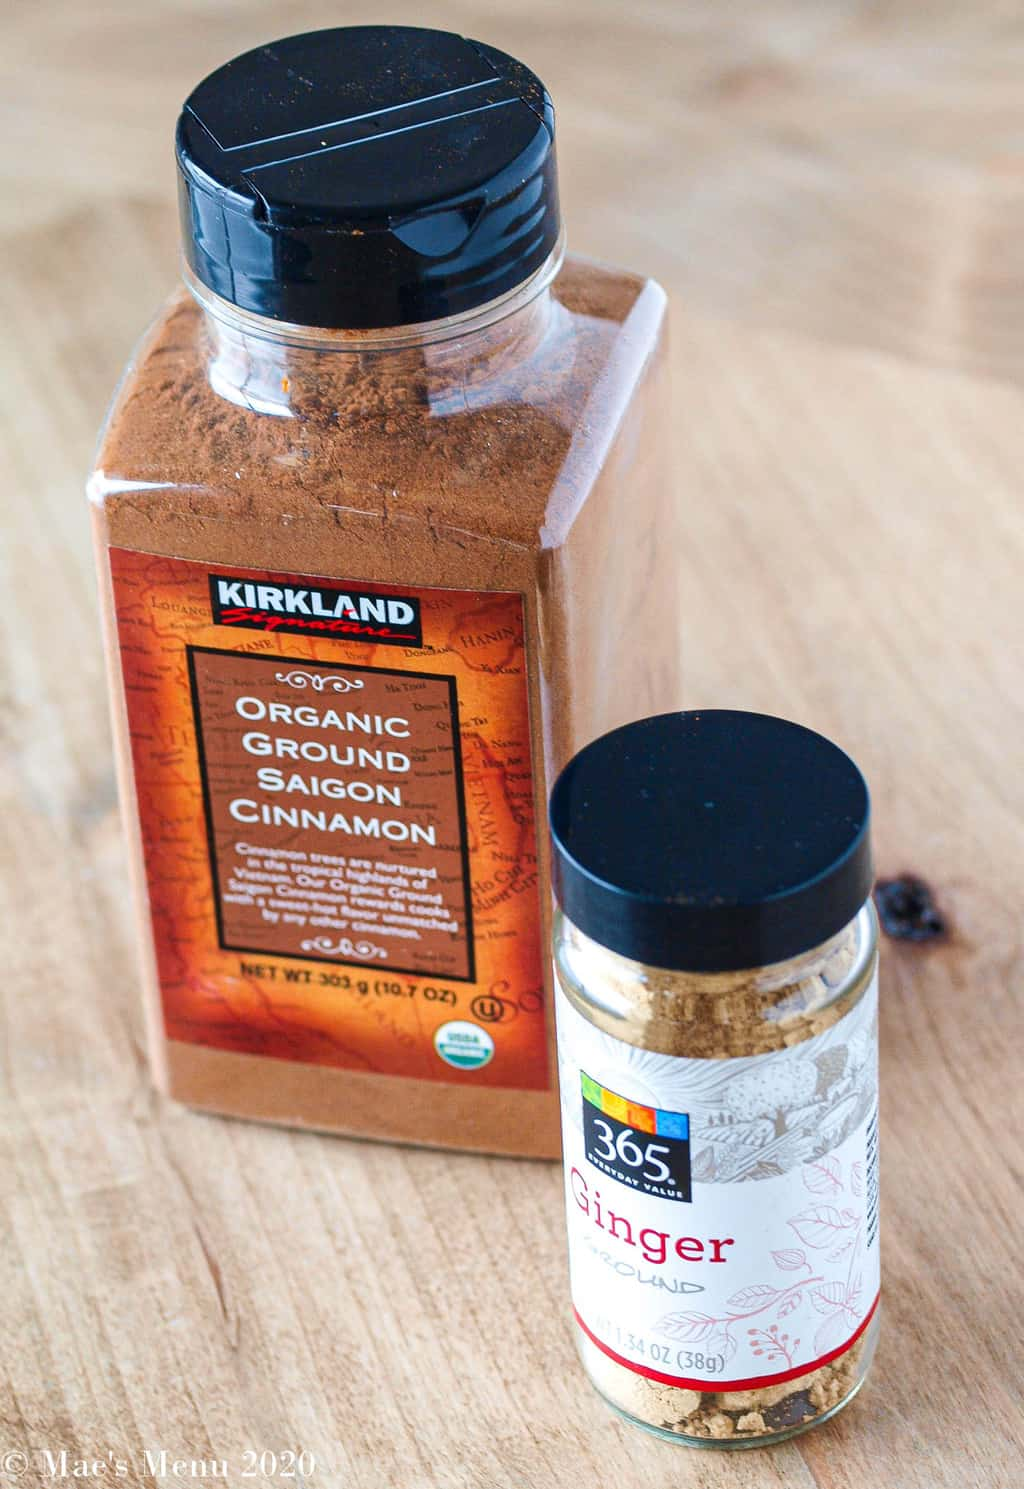 A large kirkland bottle of saigon cinnamon next to a small bottle of ginger powder